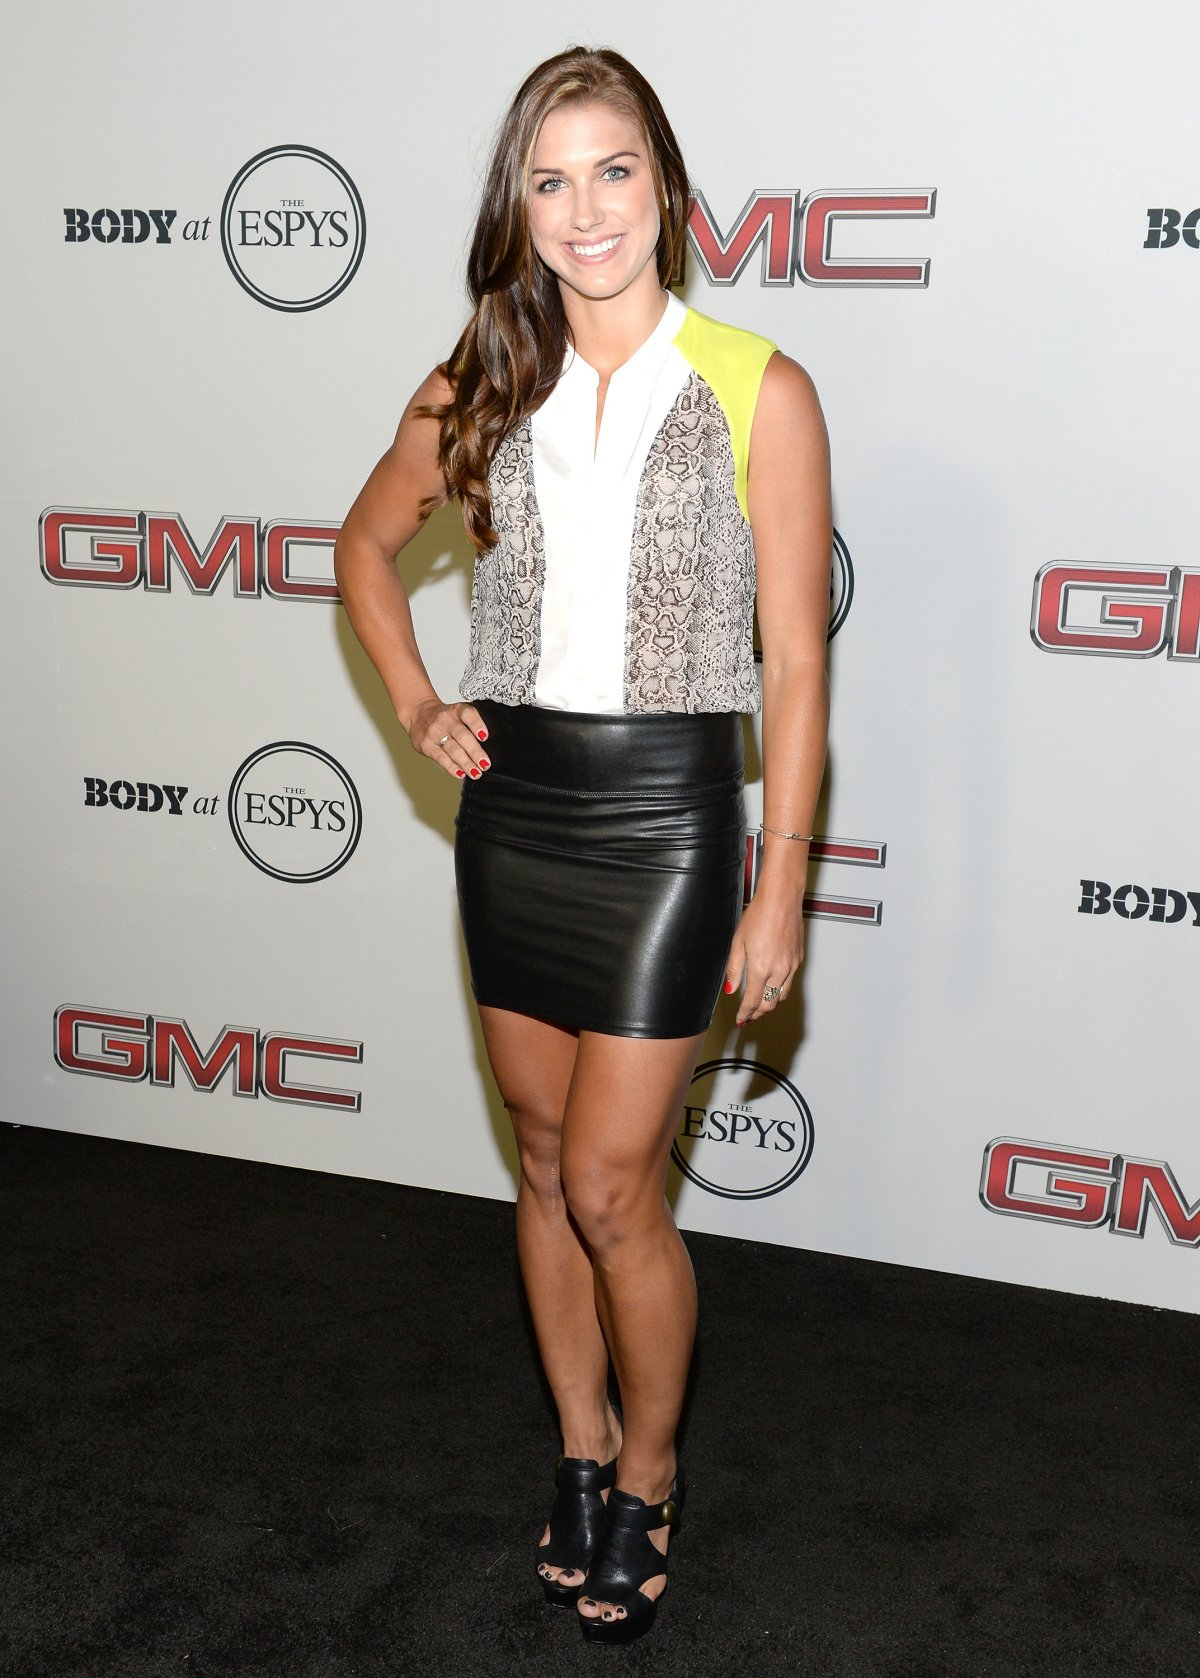 Alex-morgan-leather-skirt-ESPN-2013-Body-Issue-Party